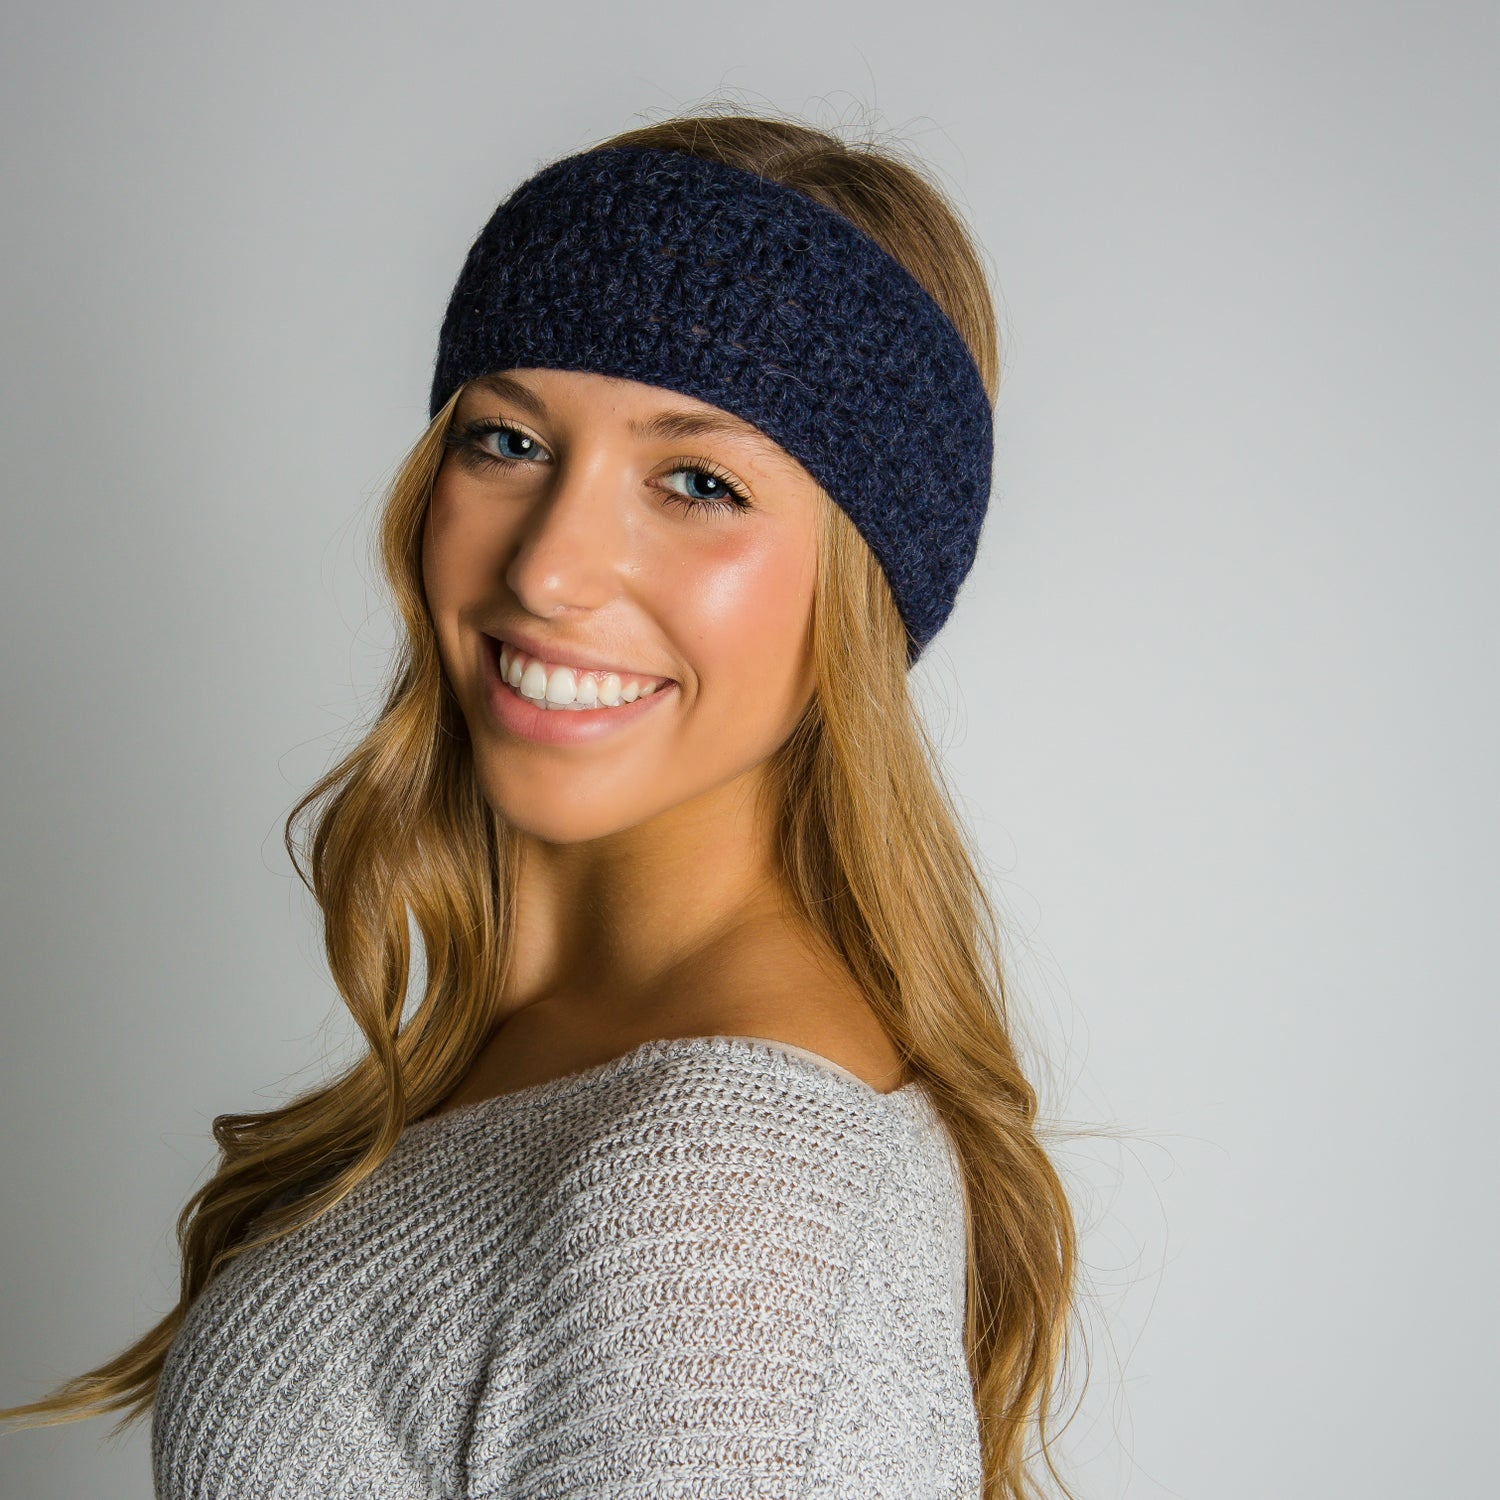 Image of Talara Head Warmer